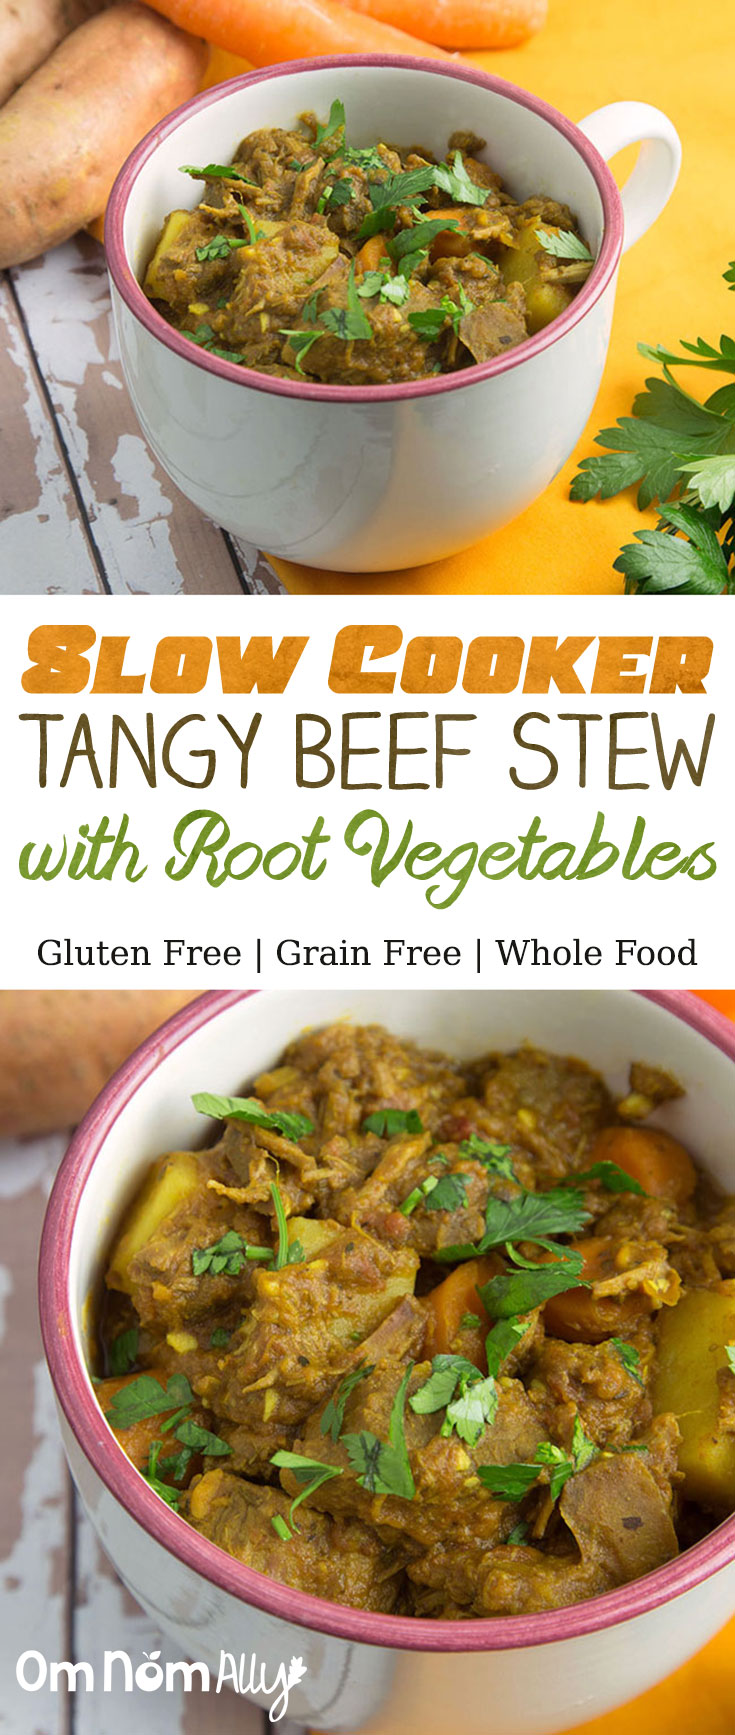 Slow Cooker Tangy Beef Stew with Root Vegetables @OmNomAlly - are you ready for this gluten-free, grain free and wholefood beef stew - WITH a paleo option?